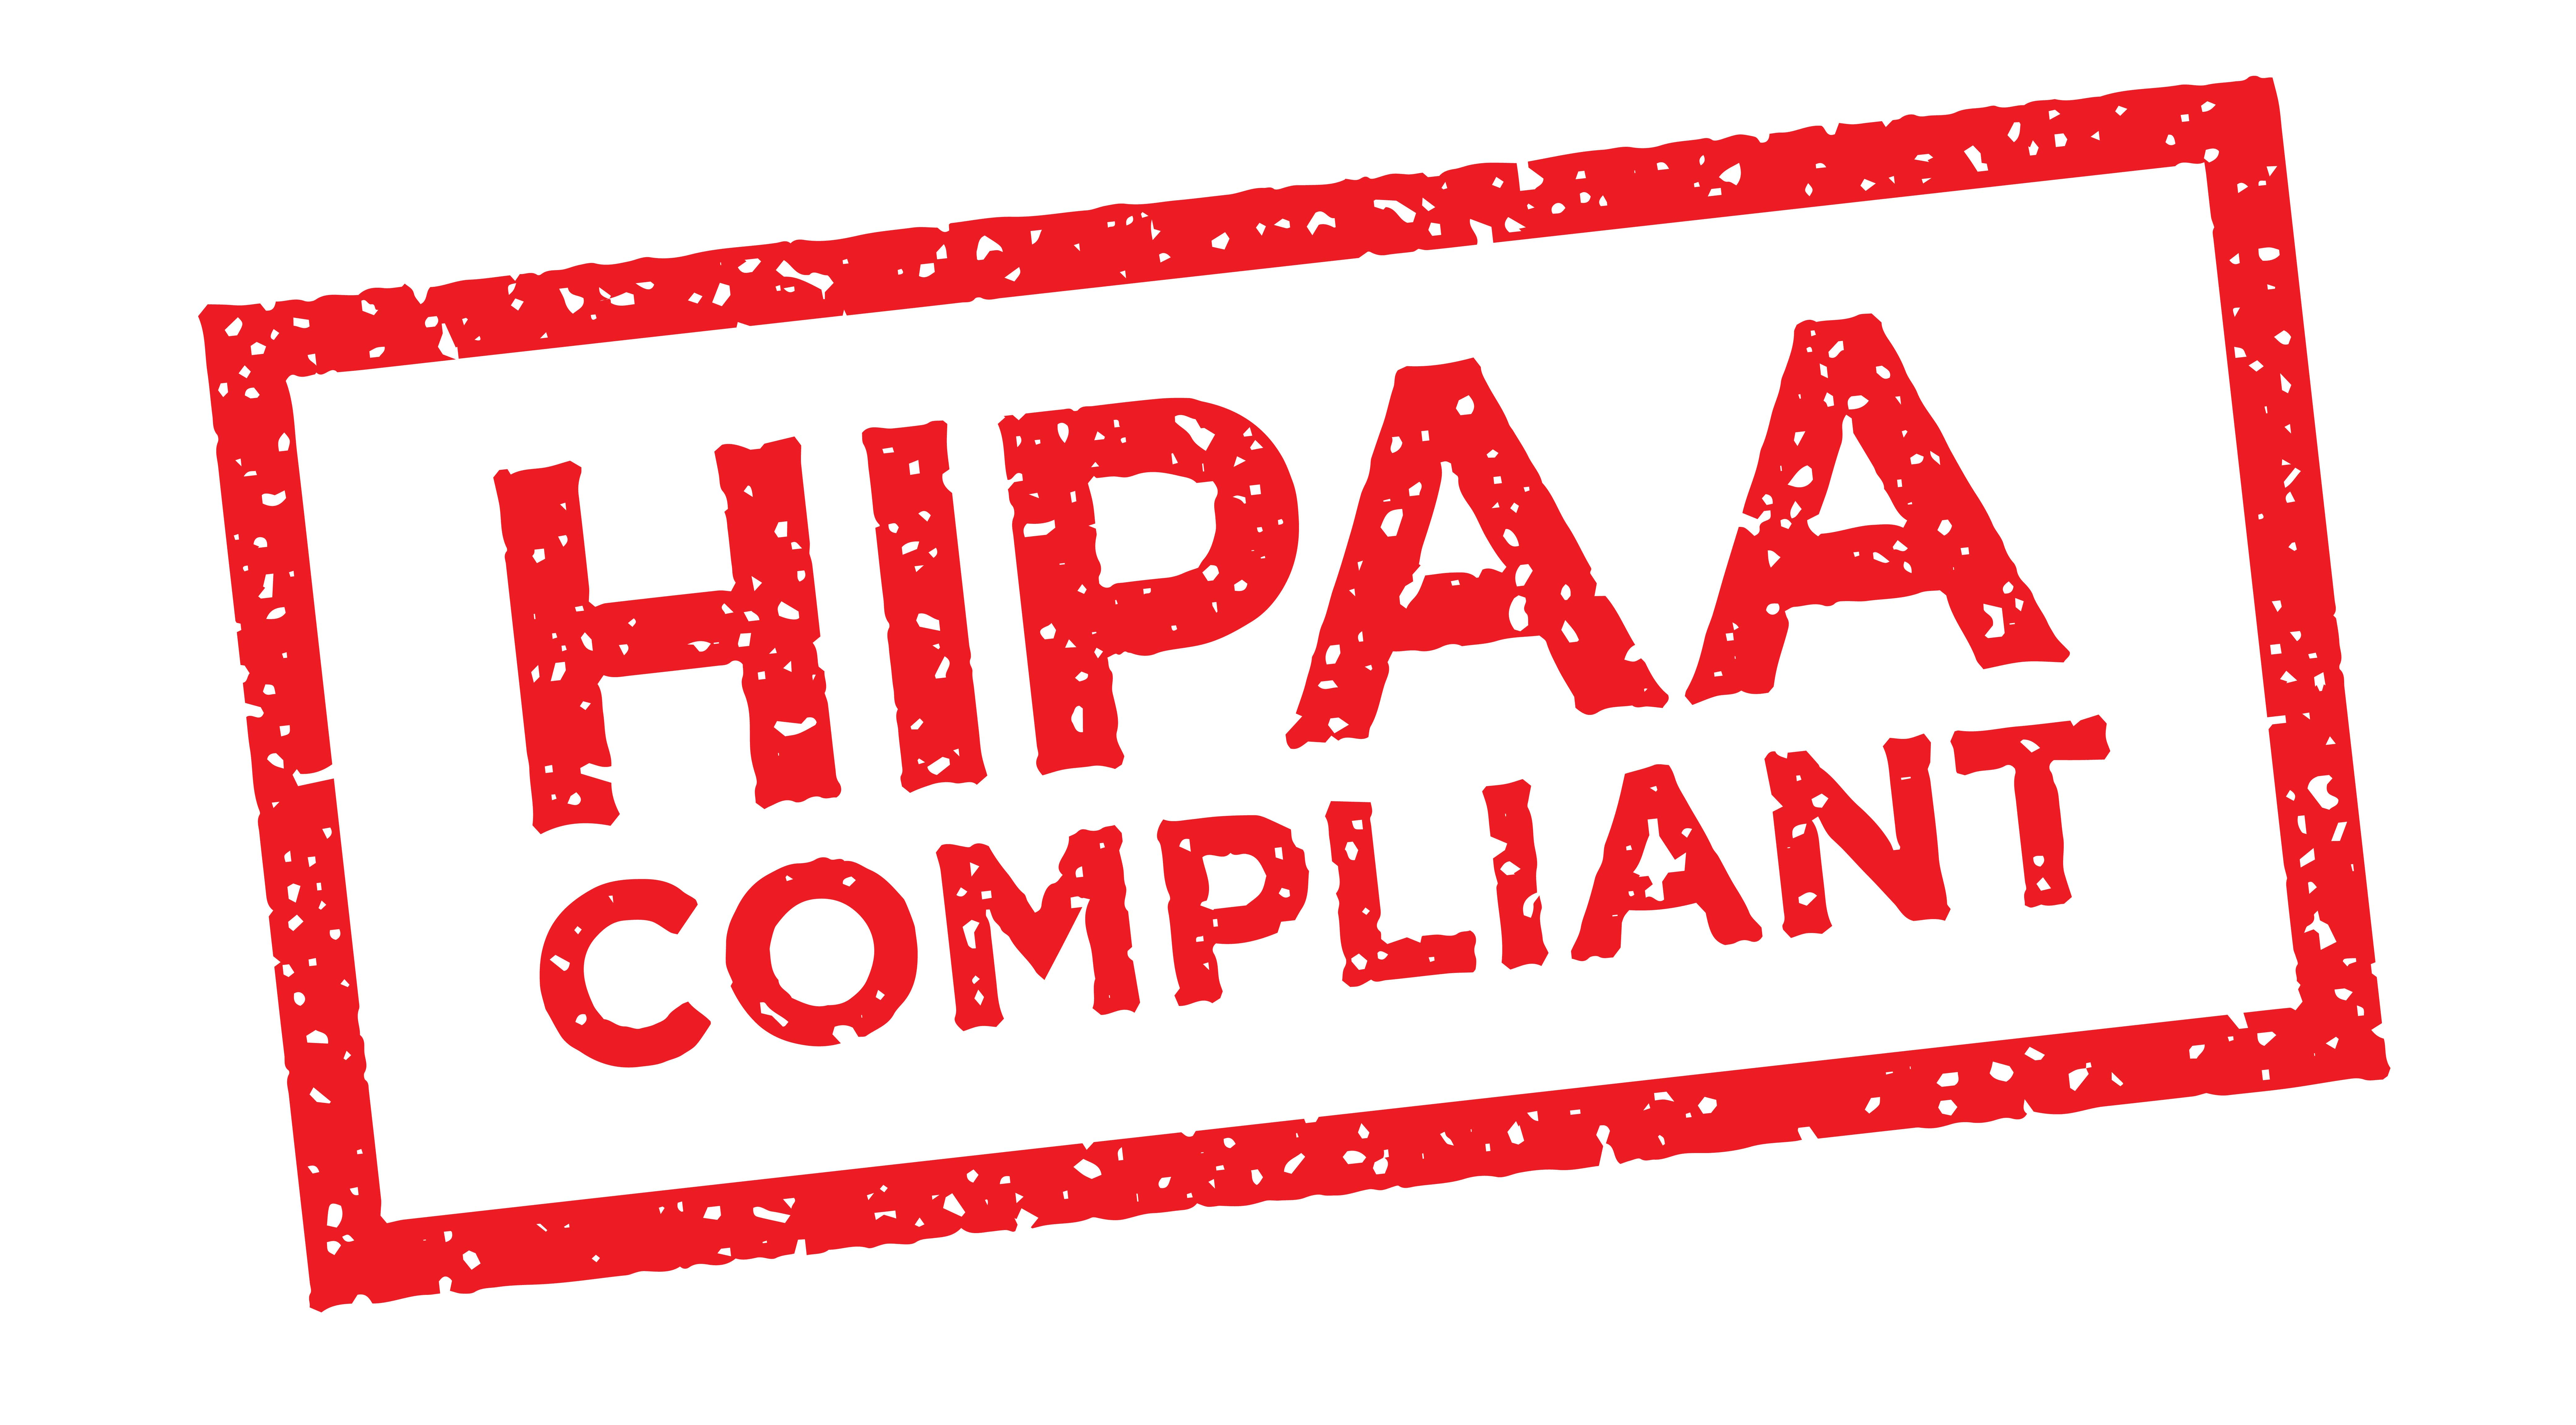 Compliance: Follow These 3 Steps to Prepare For HIPAA ...